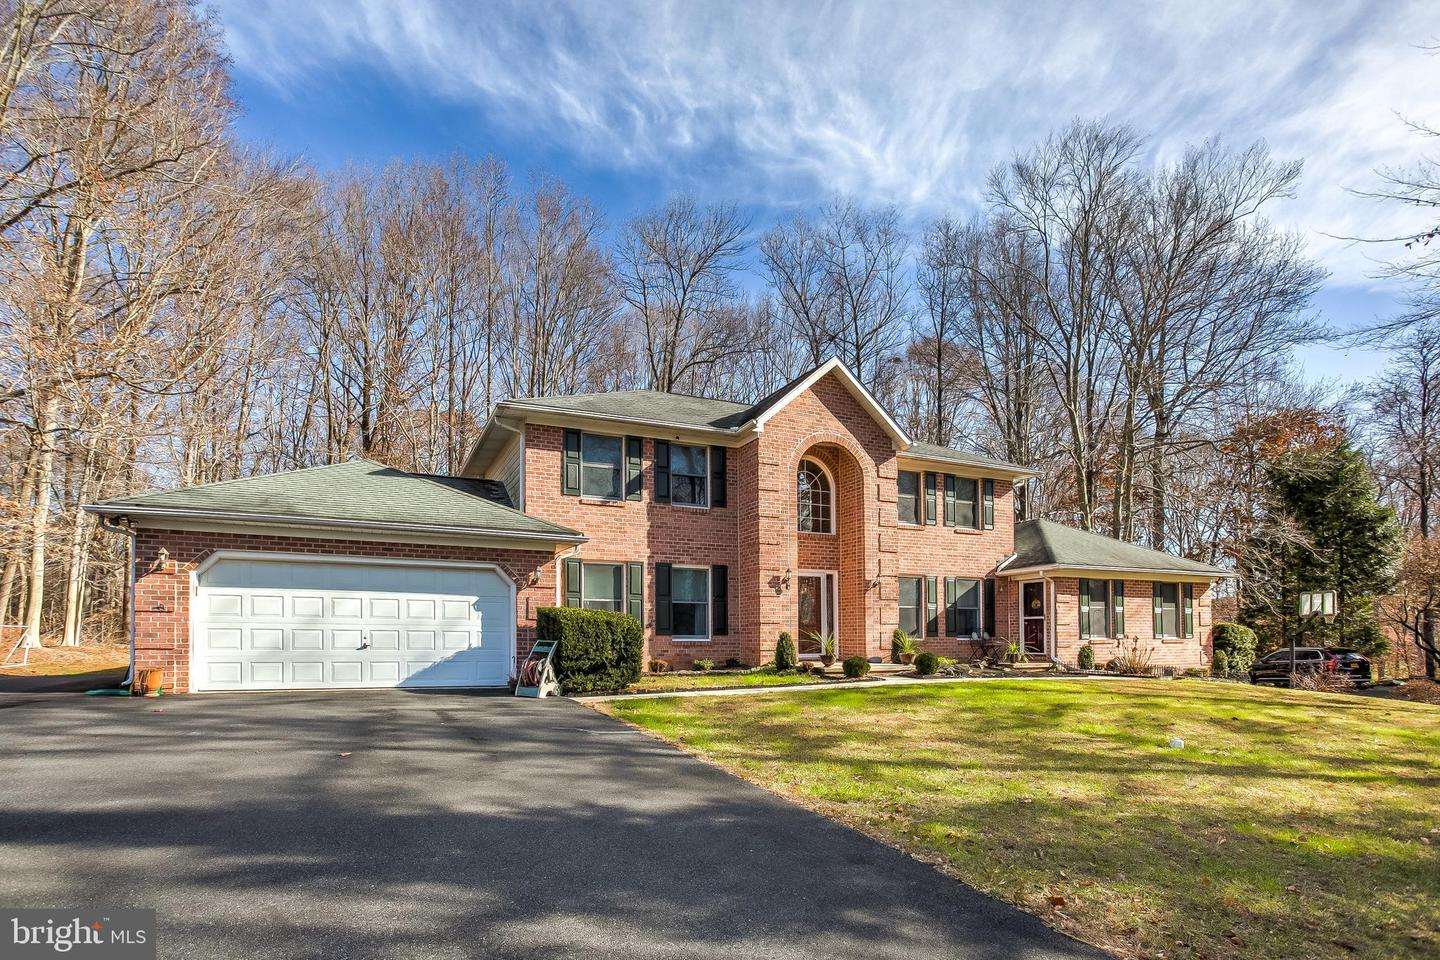 Property for Sale at Bel Air, Maryland 21015 United States